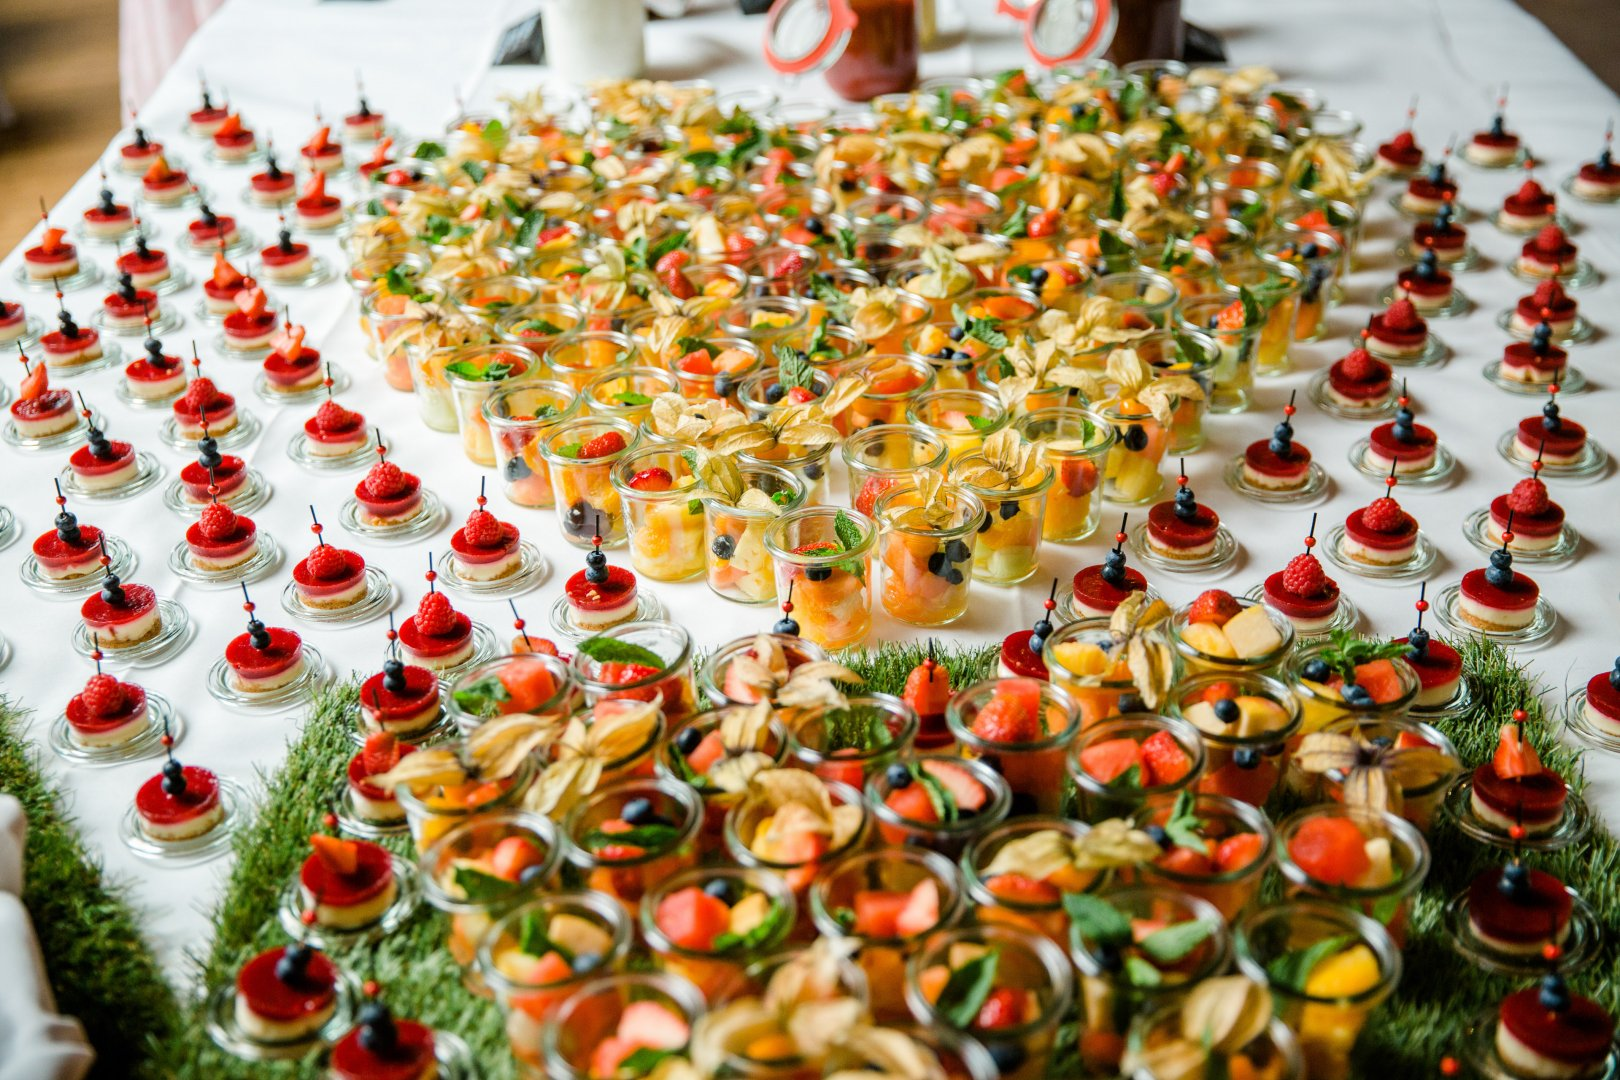 Food Cuisine Dish Canapé Finger food Meal Hors d'oeuvre appetizer À la carte food Culinary art Ingredient Garnish Buffet Vegetarian food Delicacy Produce